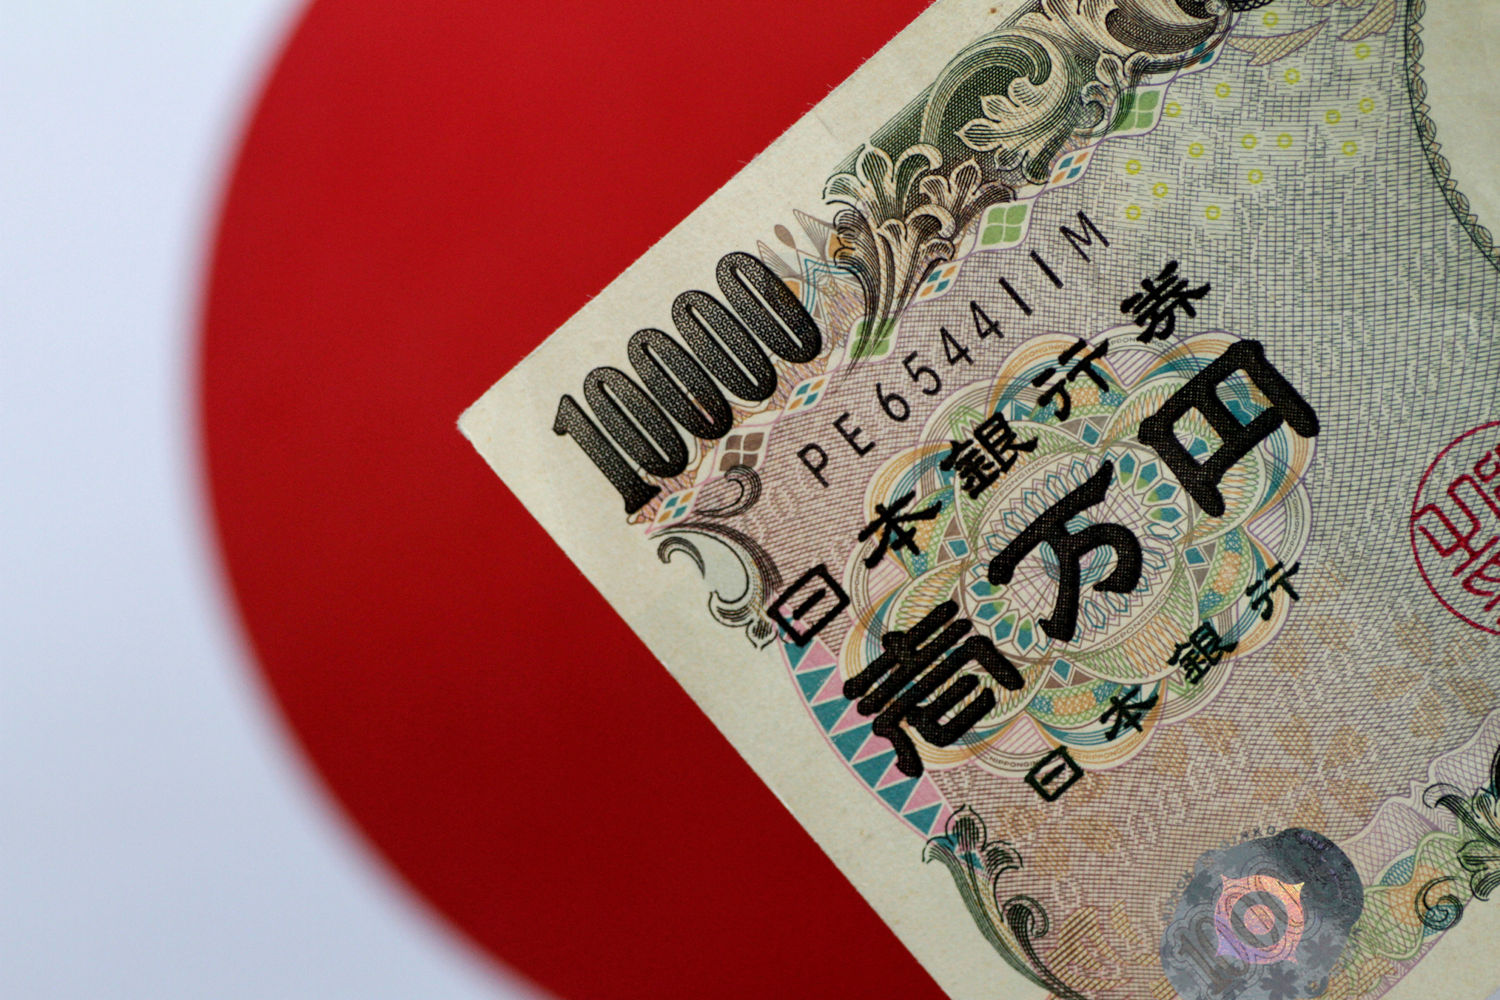 Japan takes steps towards creating a digital version of the yen